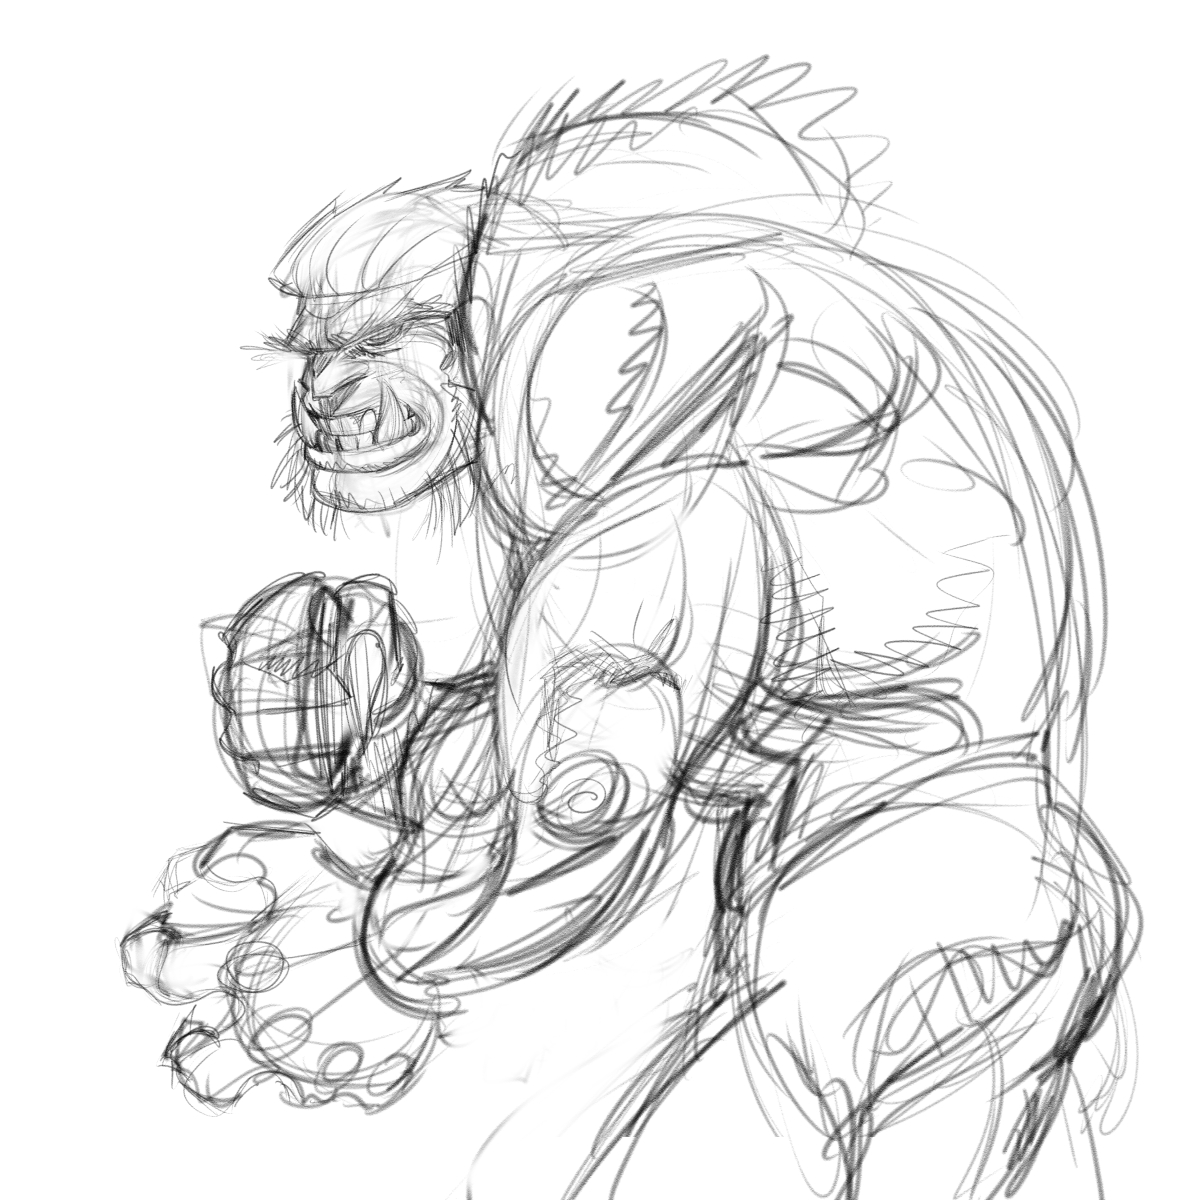 Sabretooth pencil rough